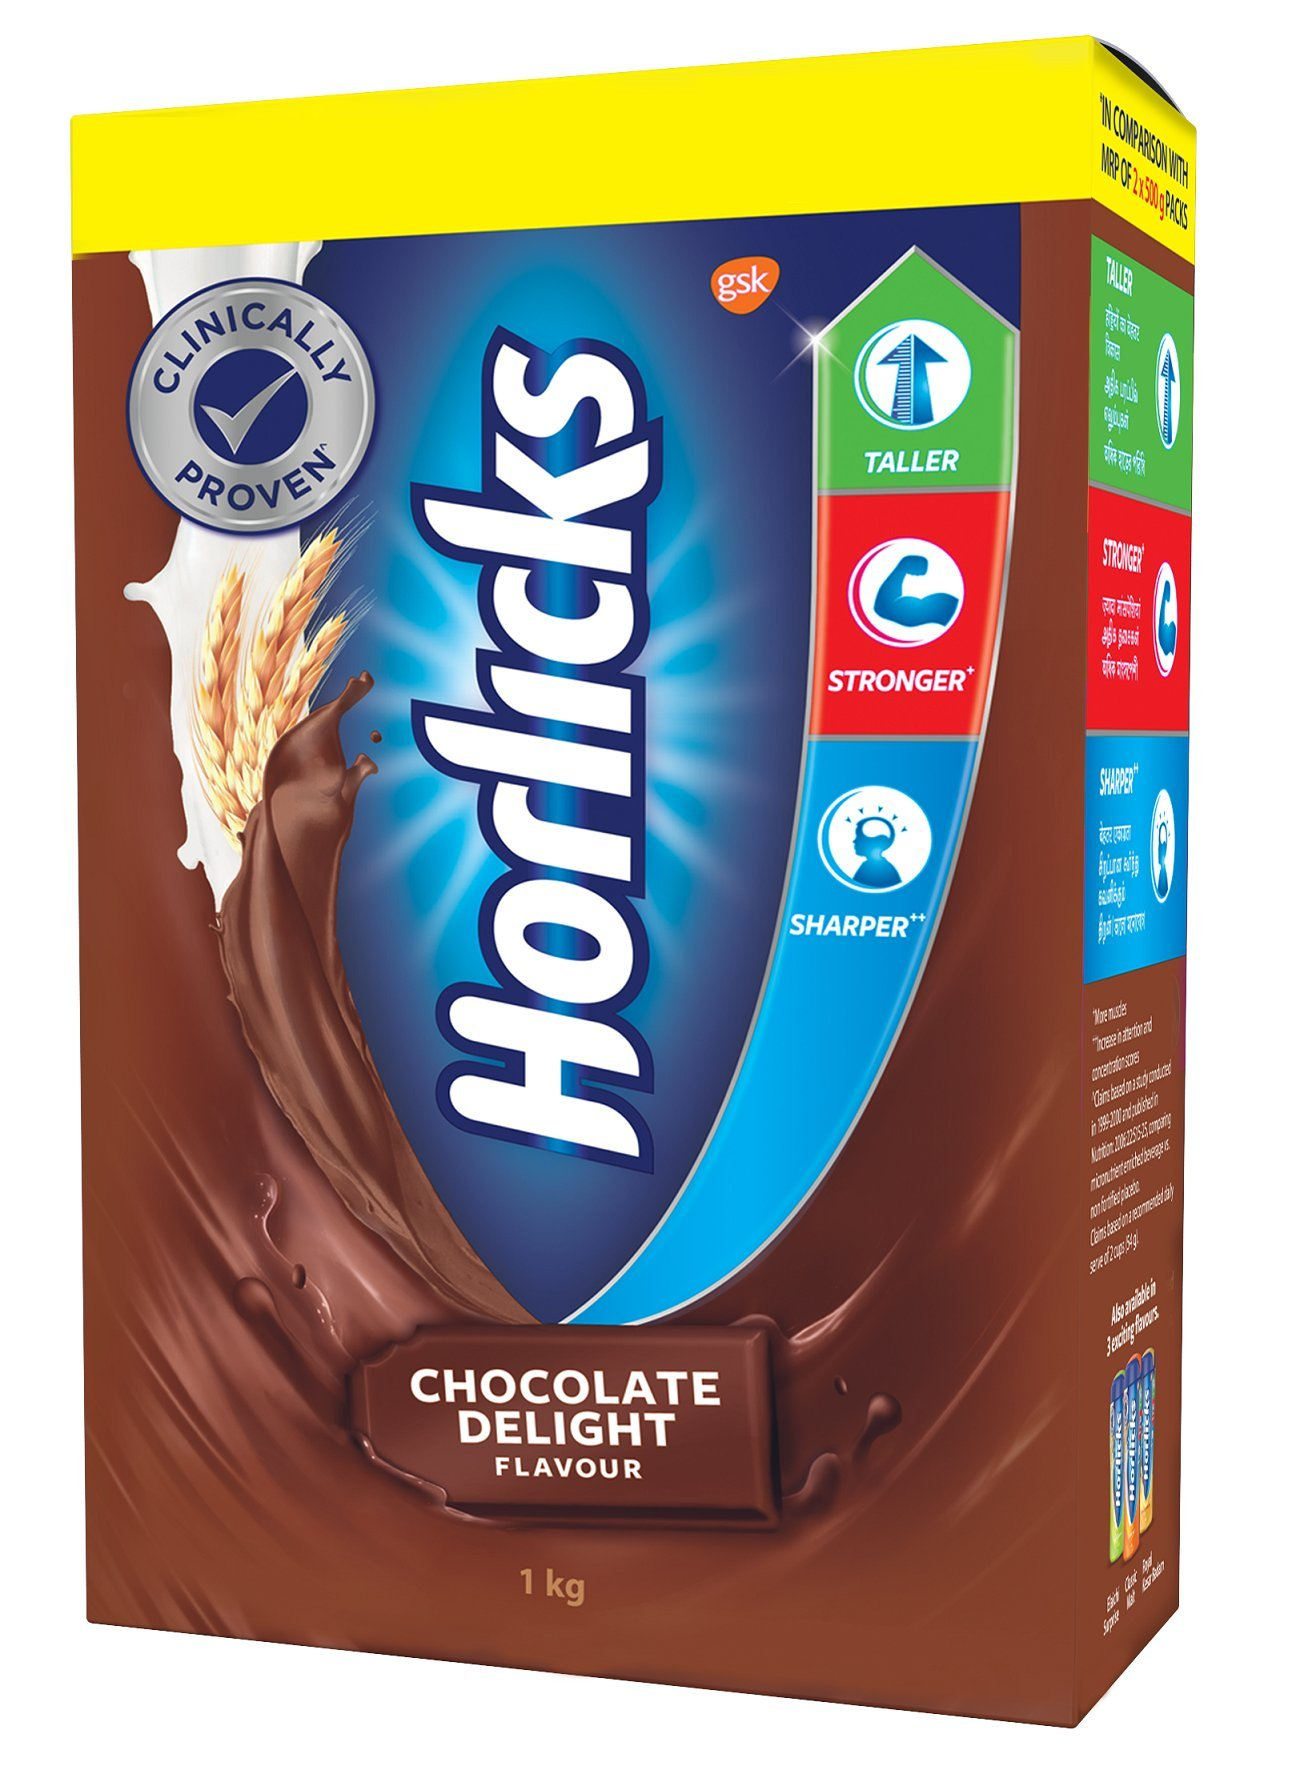 Horlicks Health And Nutrition Drink 1 Kg Refill Pack Chocolate Flavor Buy Online In Aruba Horlicks Products In Aruba See Prices Reviews And Free Delivery Over 120 ƒ Desertcart